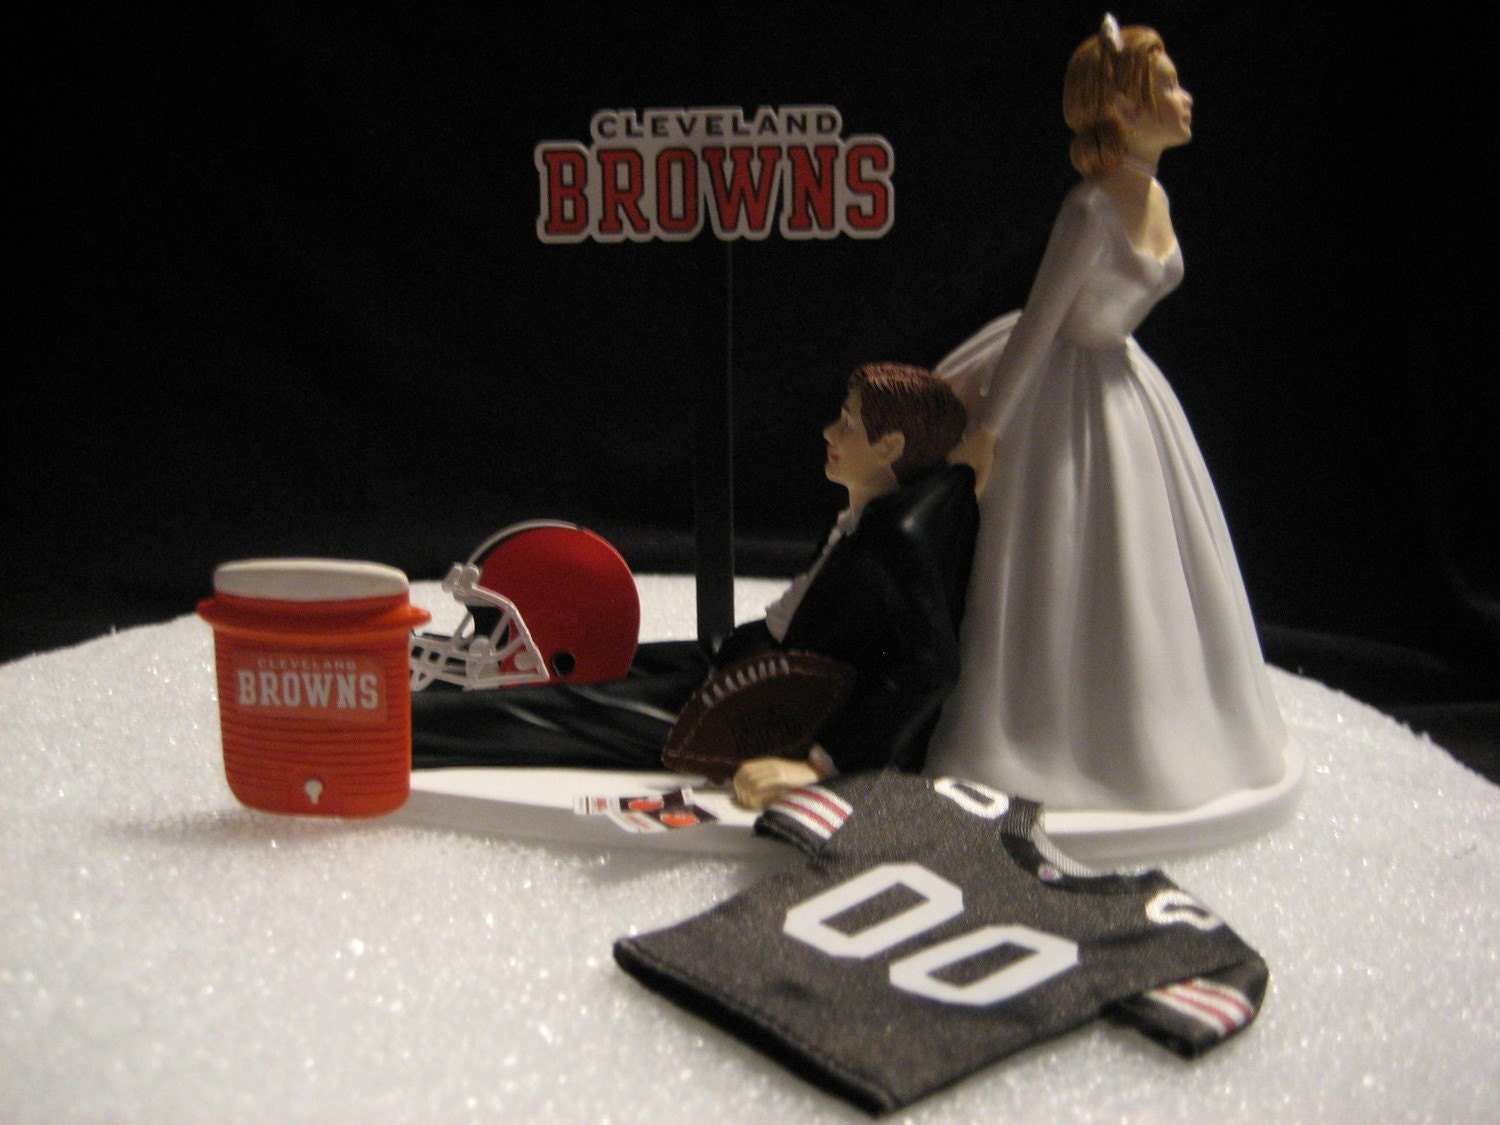 Cleveland Browns Wedding Cake Topper Bride Groom By Finsnhorns